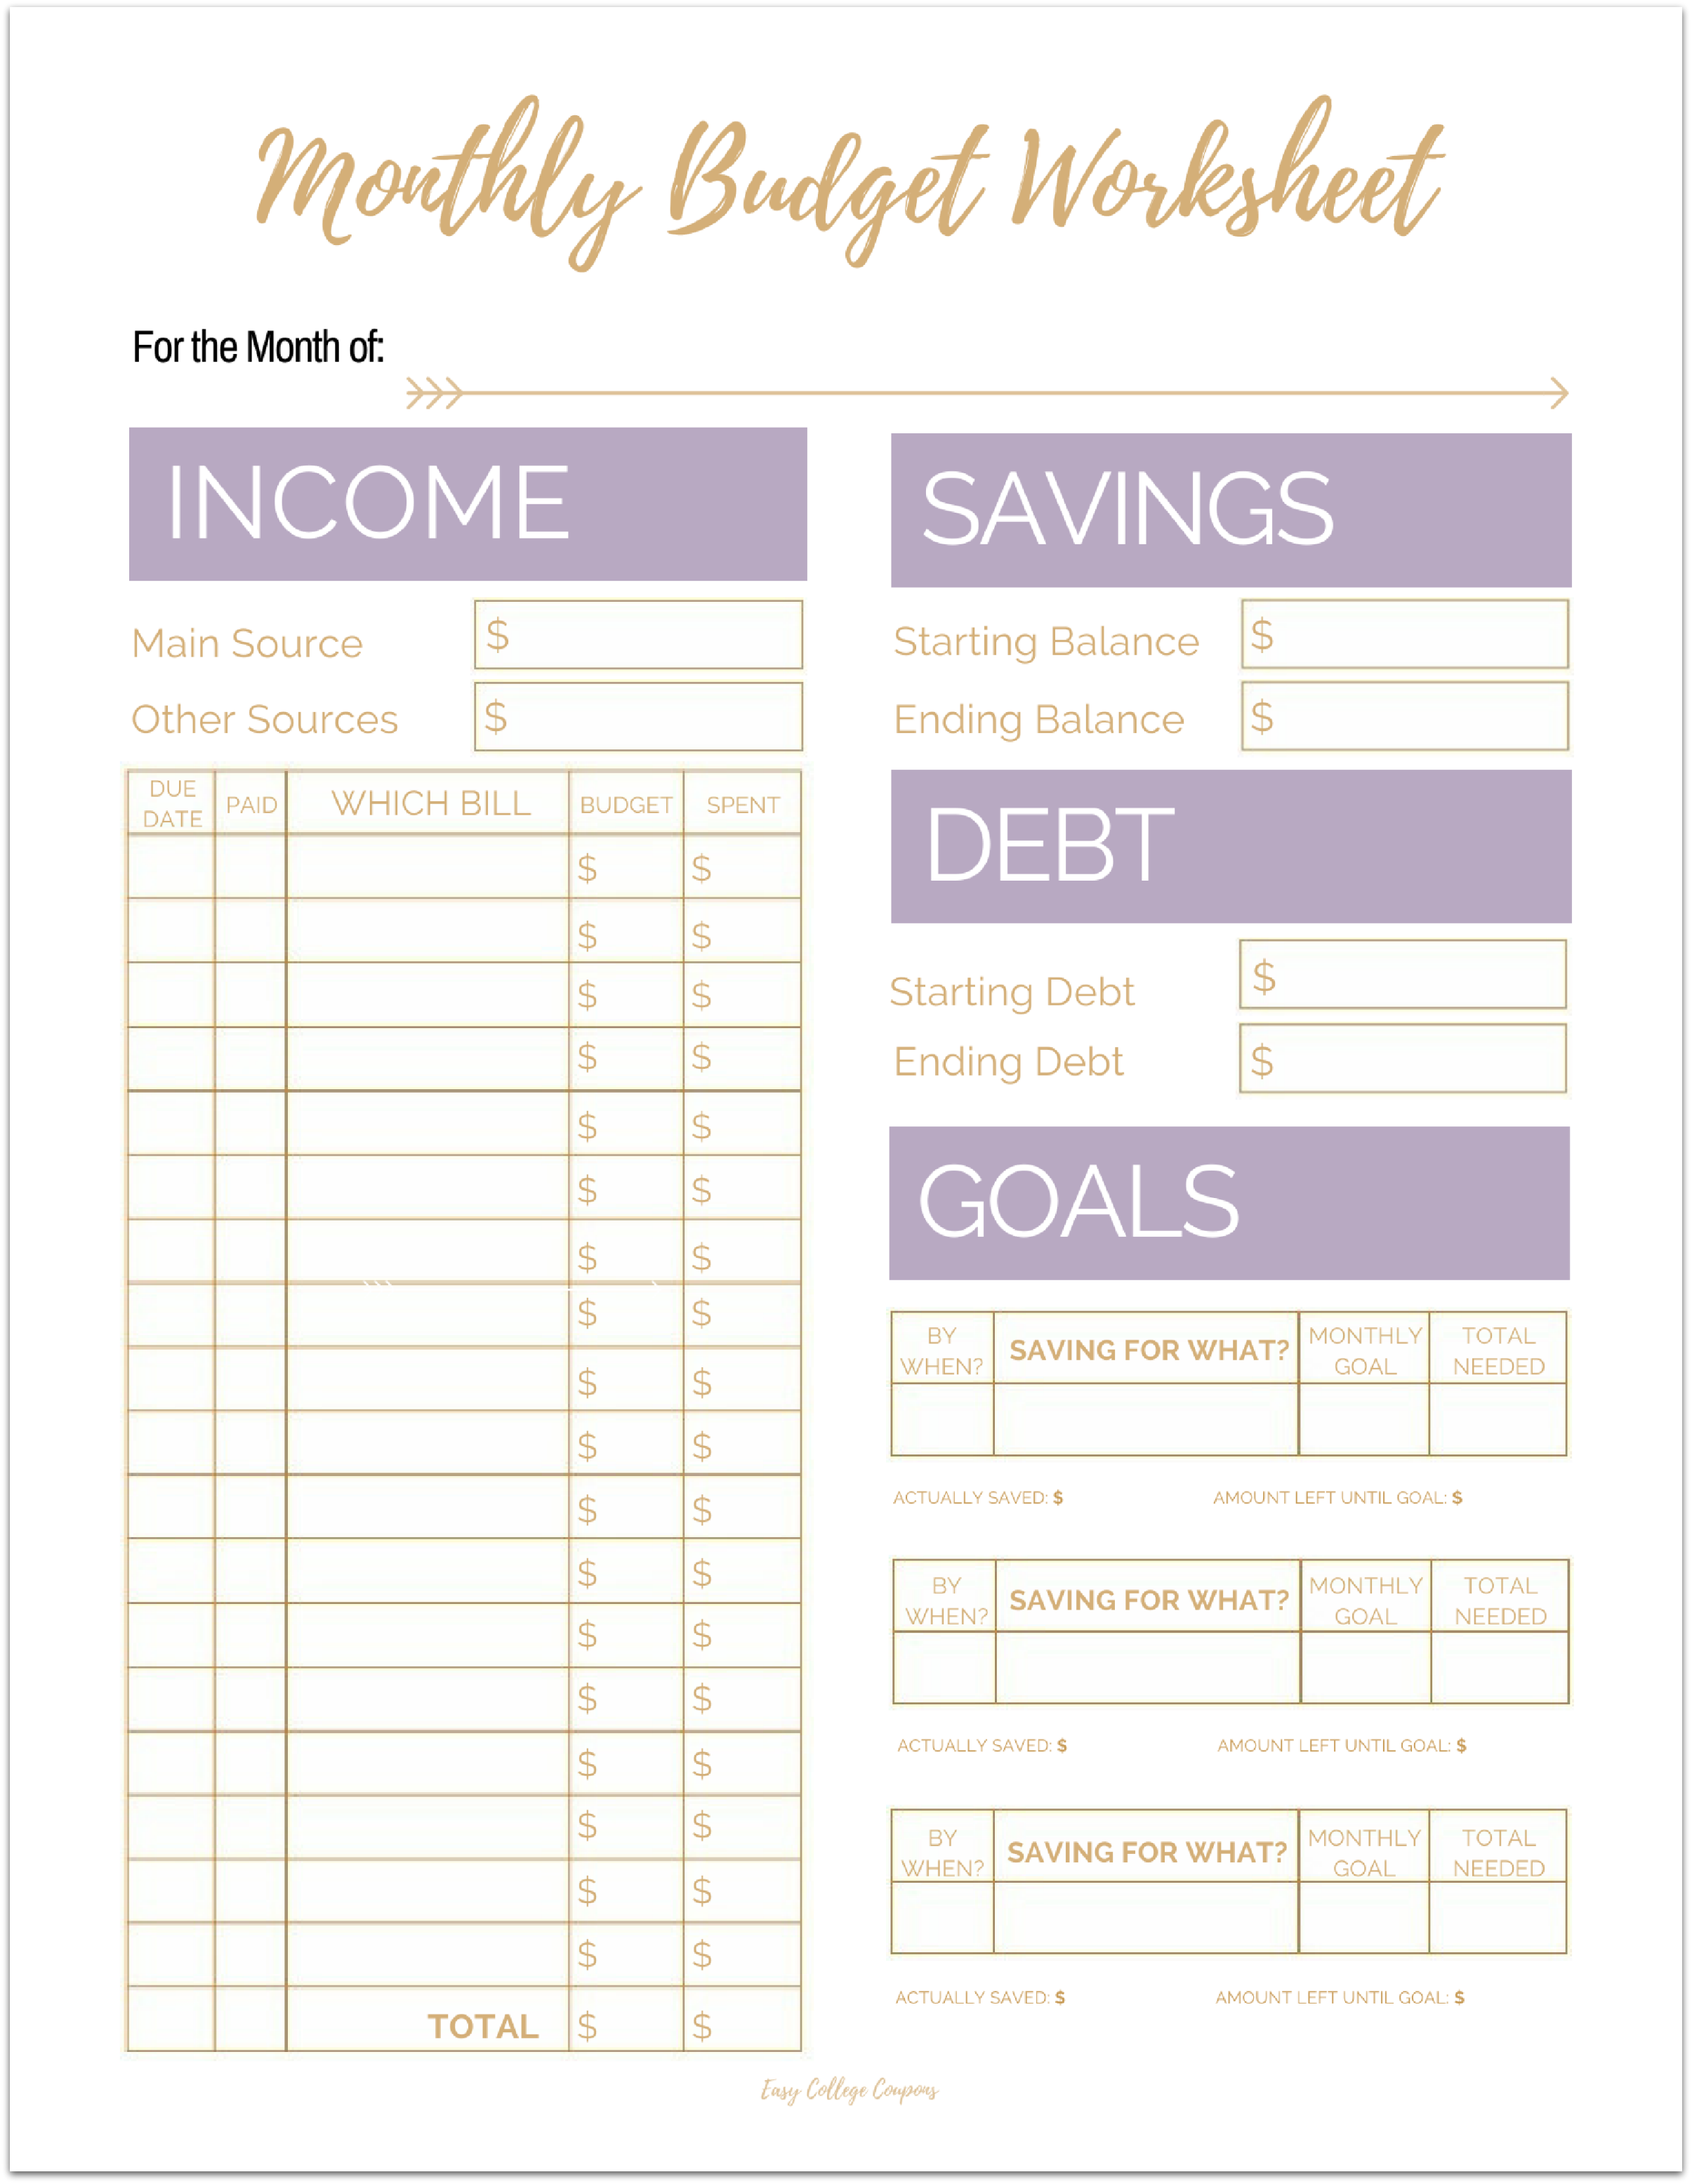 Worksheets Budget Worksheets Printable free printable monthly budget worksheets the worksheets